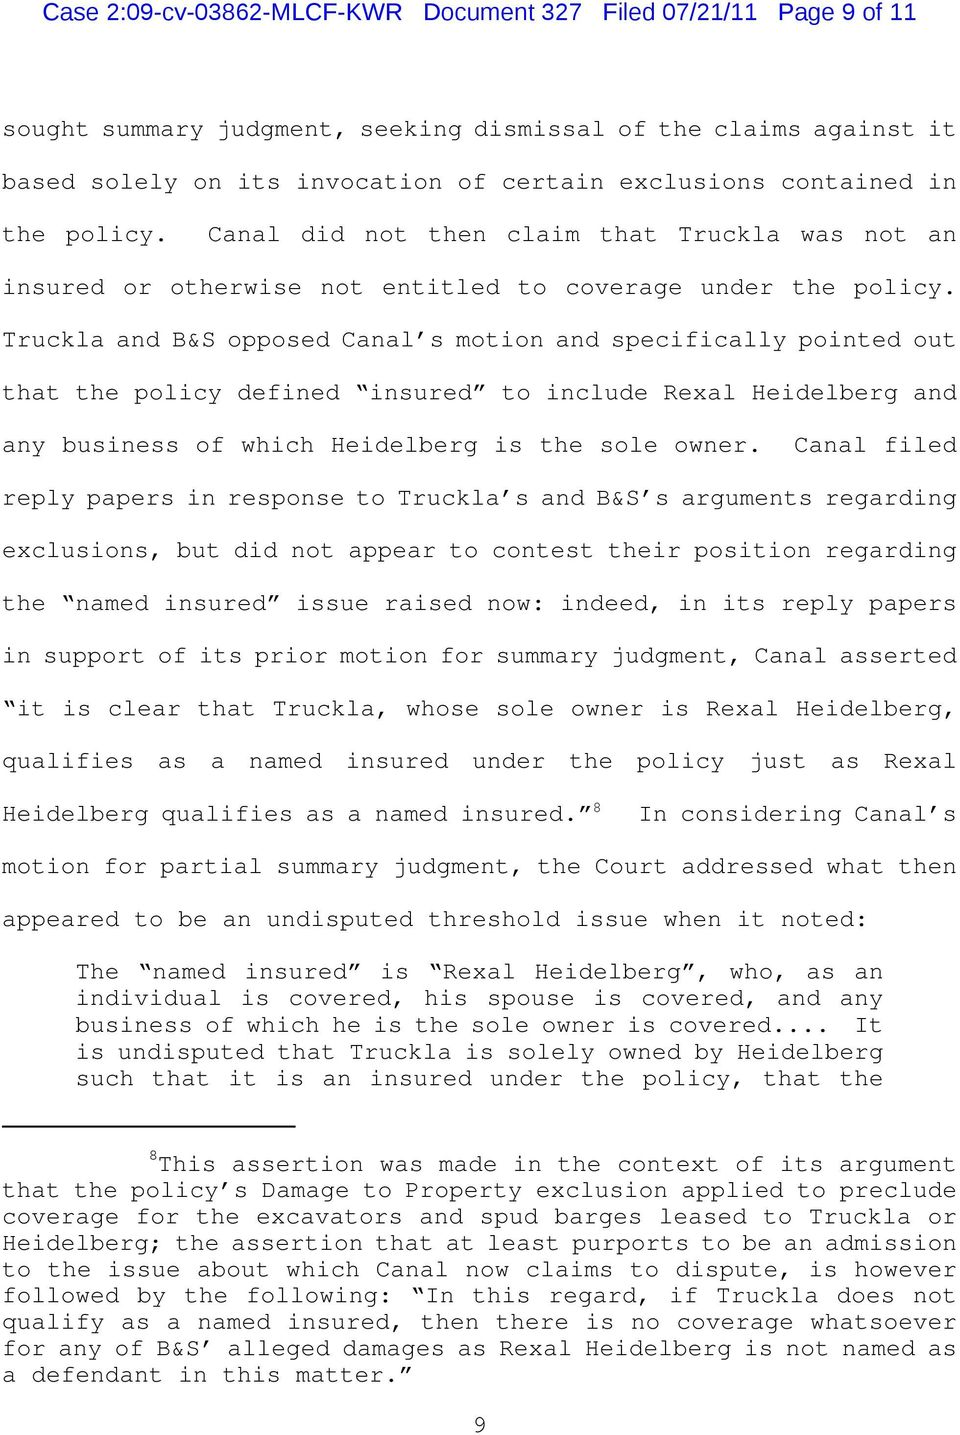 Truckla and B&S opposed Canal s motion and specifically pointed out that the policy defined insured to include Rexal Heidelberg and any business of which Heidelberg is the sole owner.